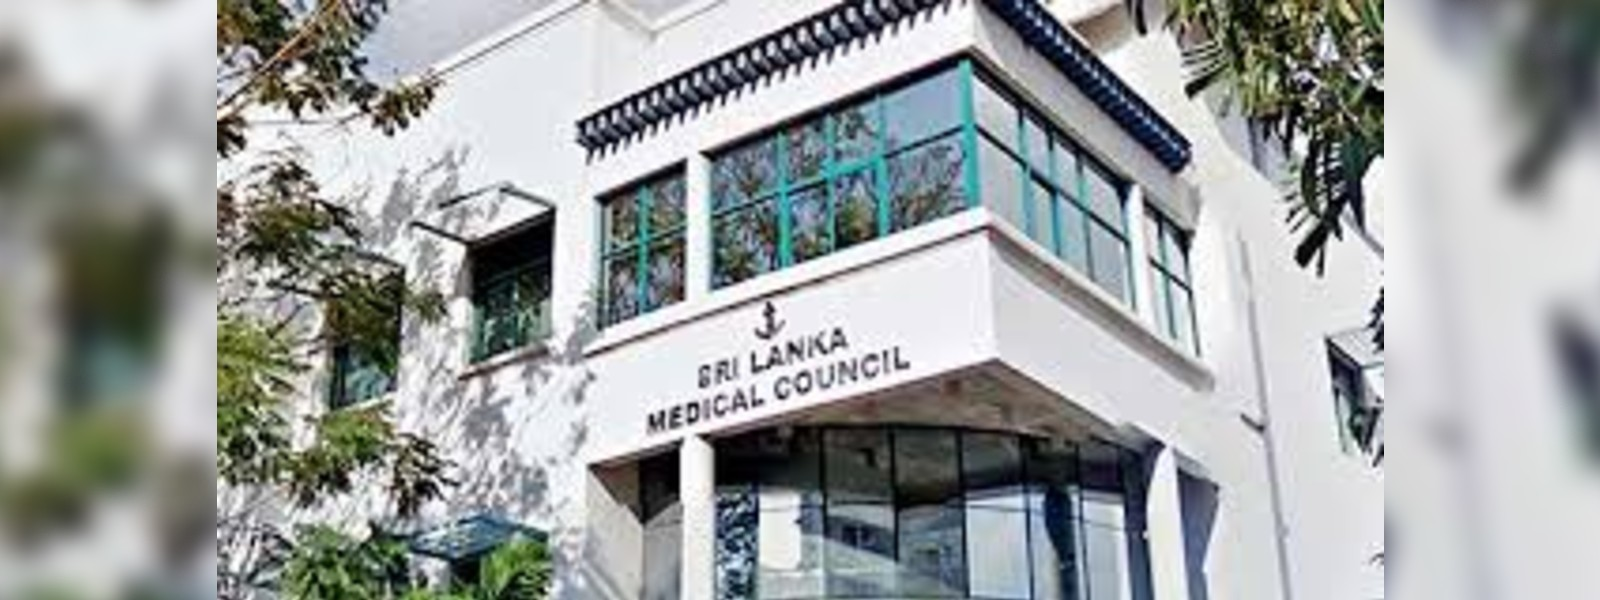 Sri Lanka Medical Council delists three Russian Universities including Patrice Lumumba University from the list of foreign universities recognized by Sri Lanka